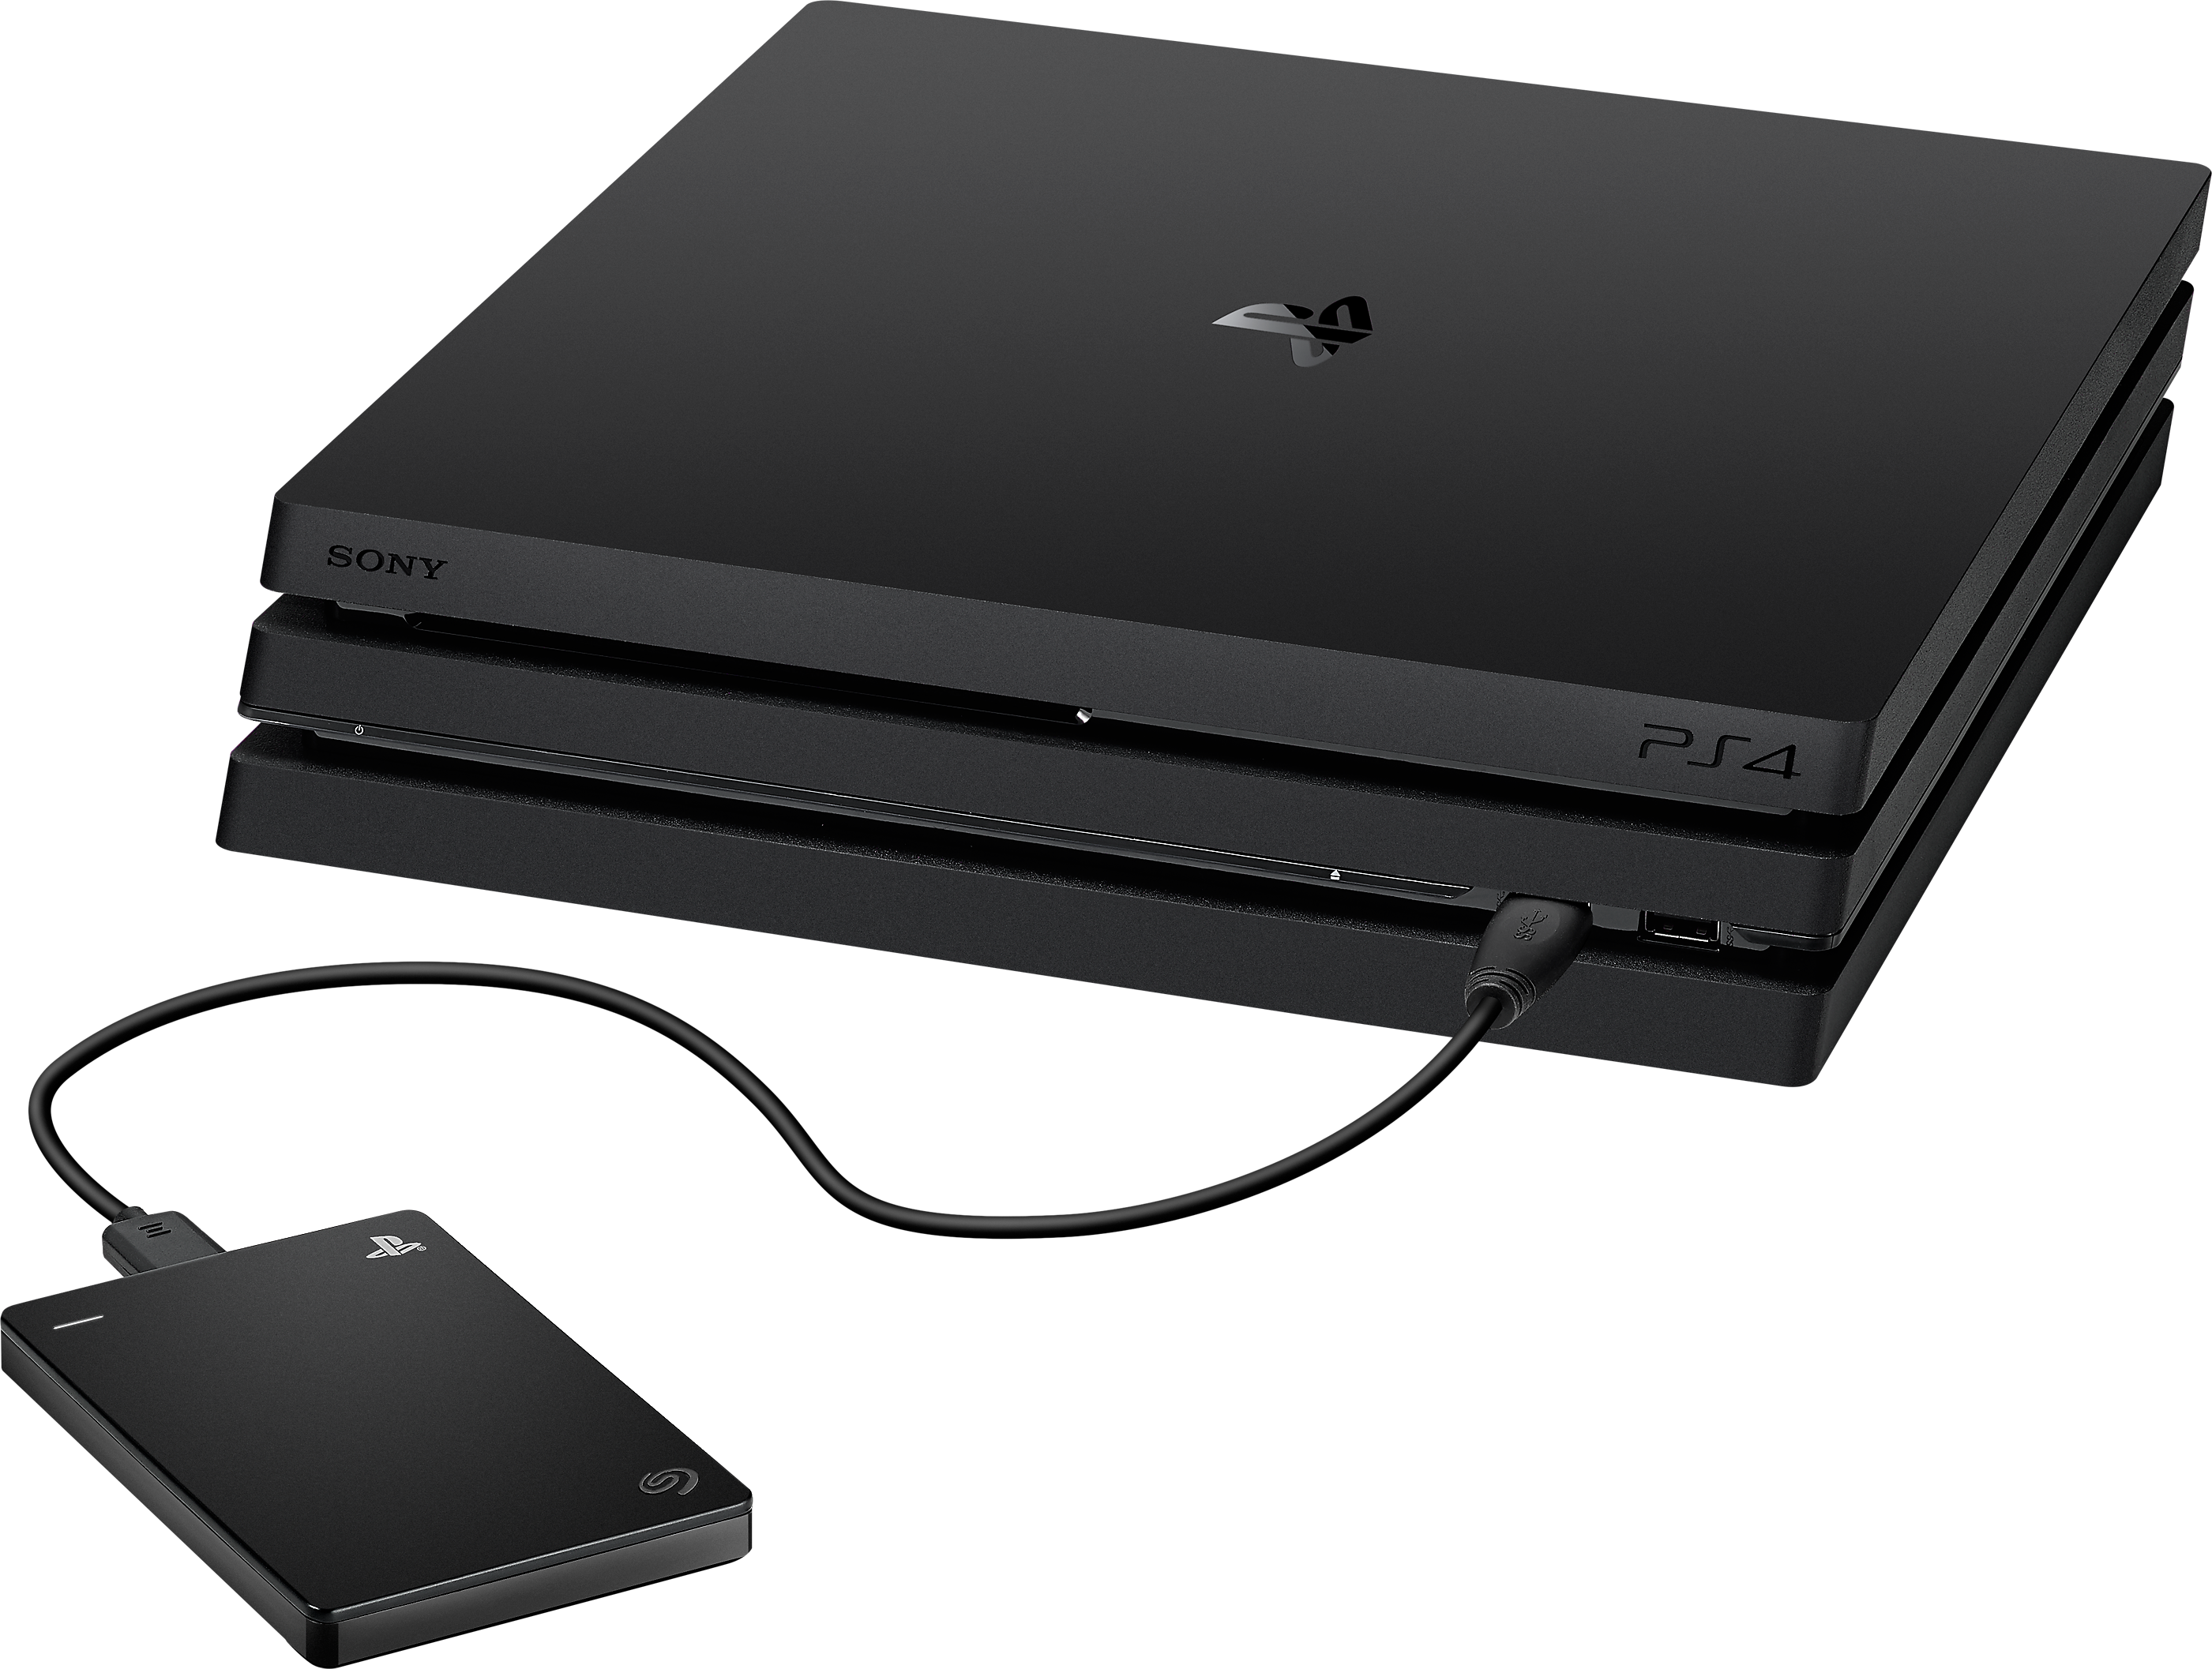 Seagate Drive Playstation